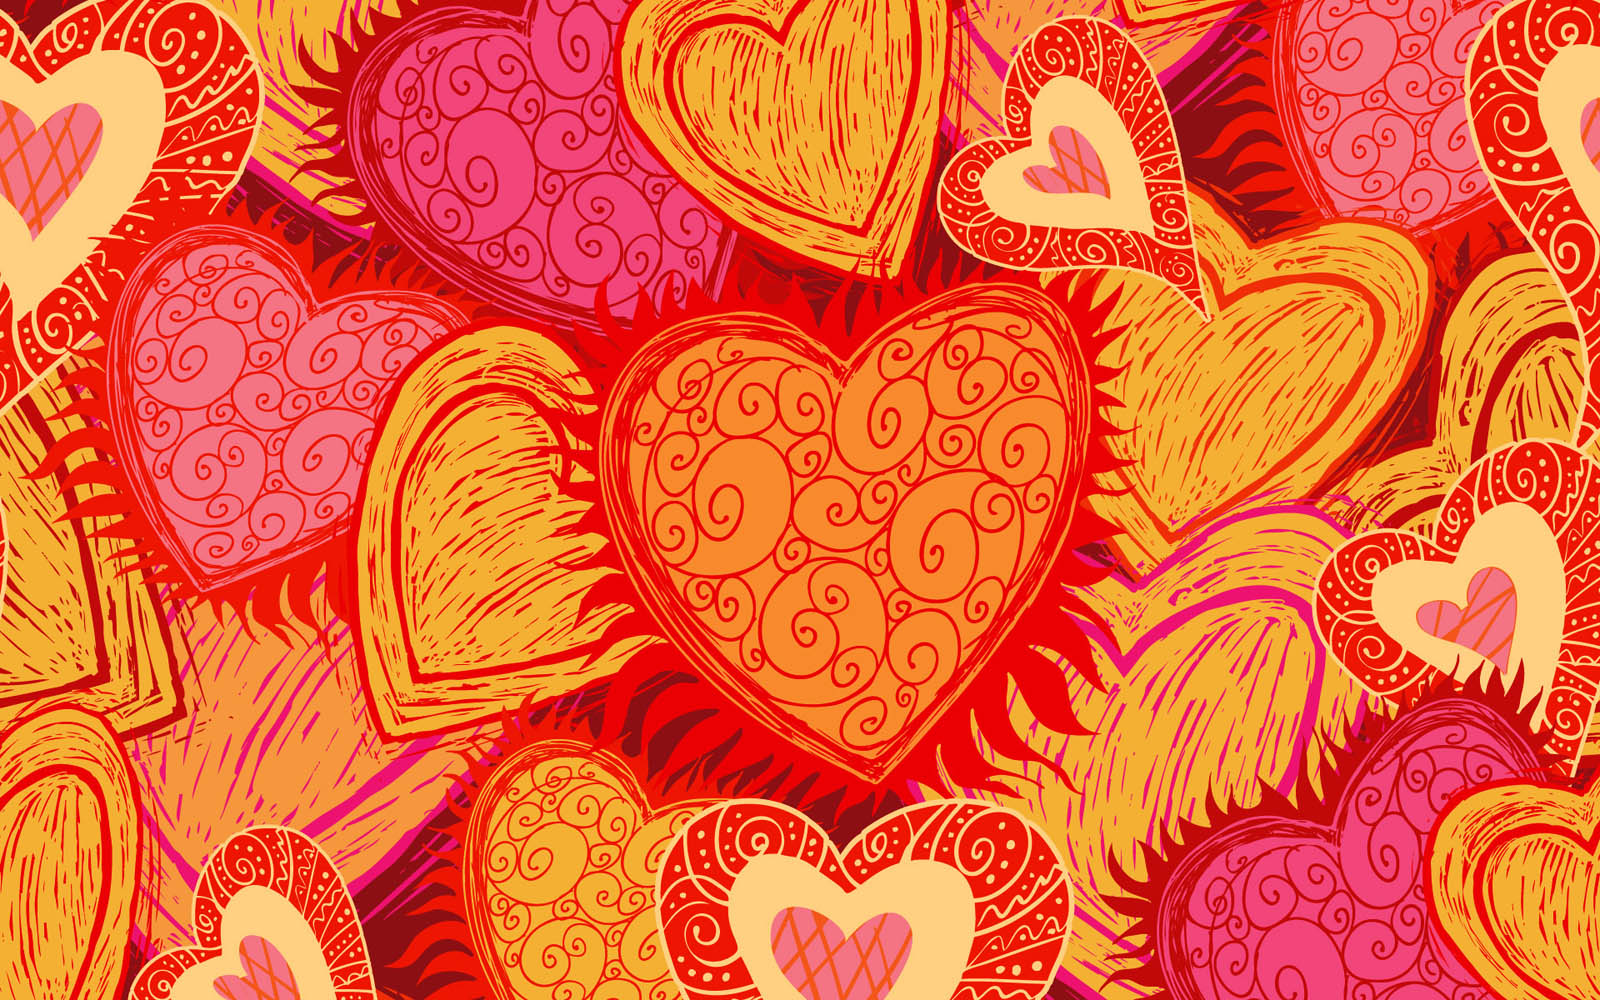 Heart Love Wallpapers ~ Desktop Wallpaper